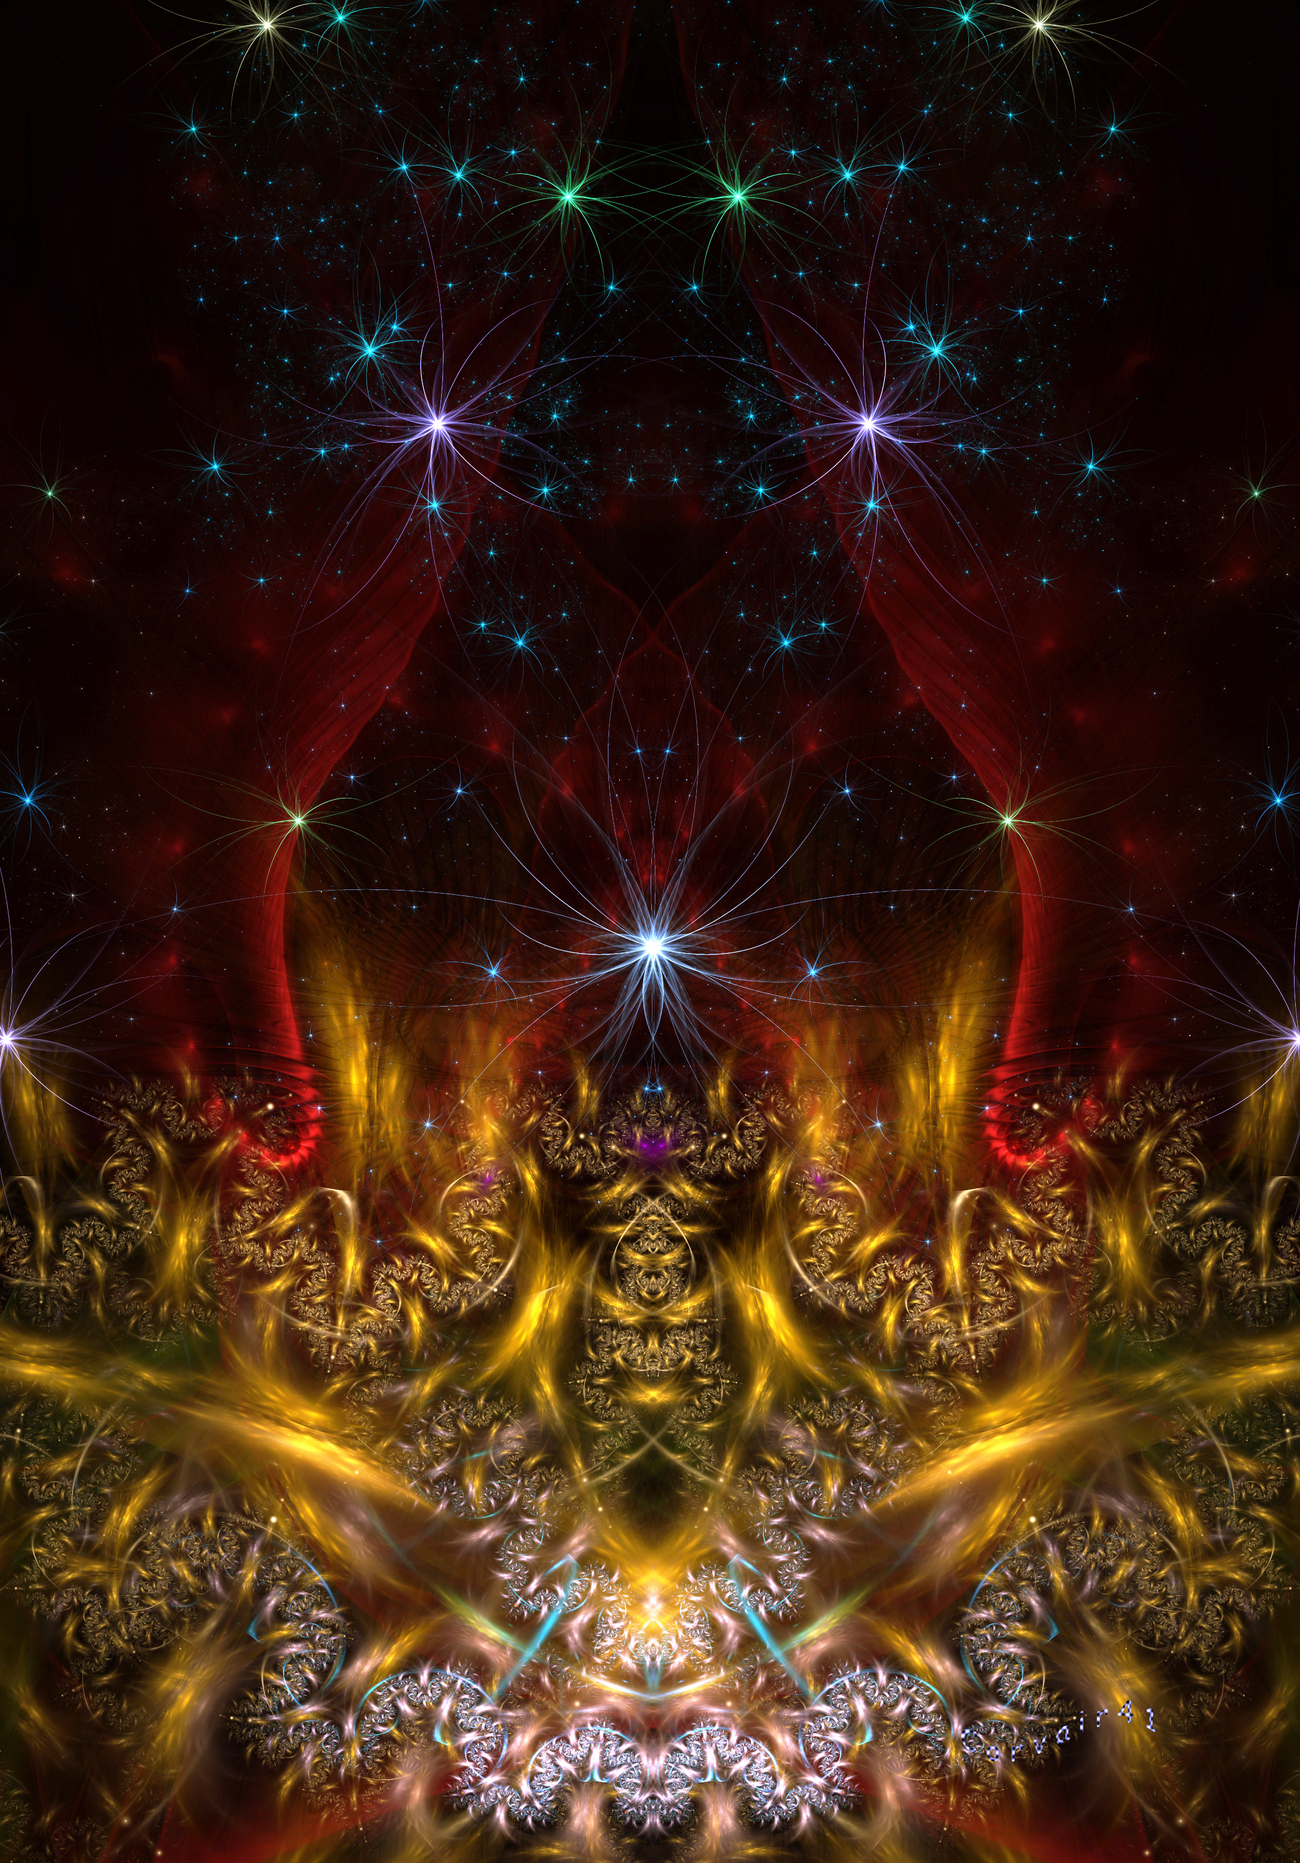 Fractal fantasy by corvair42